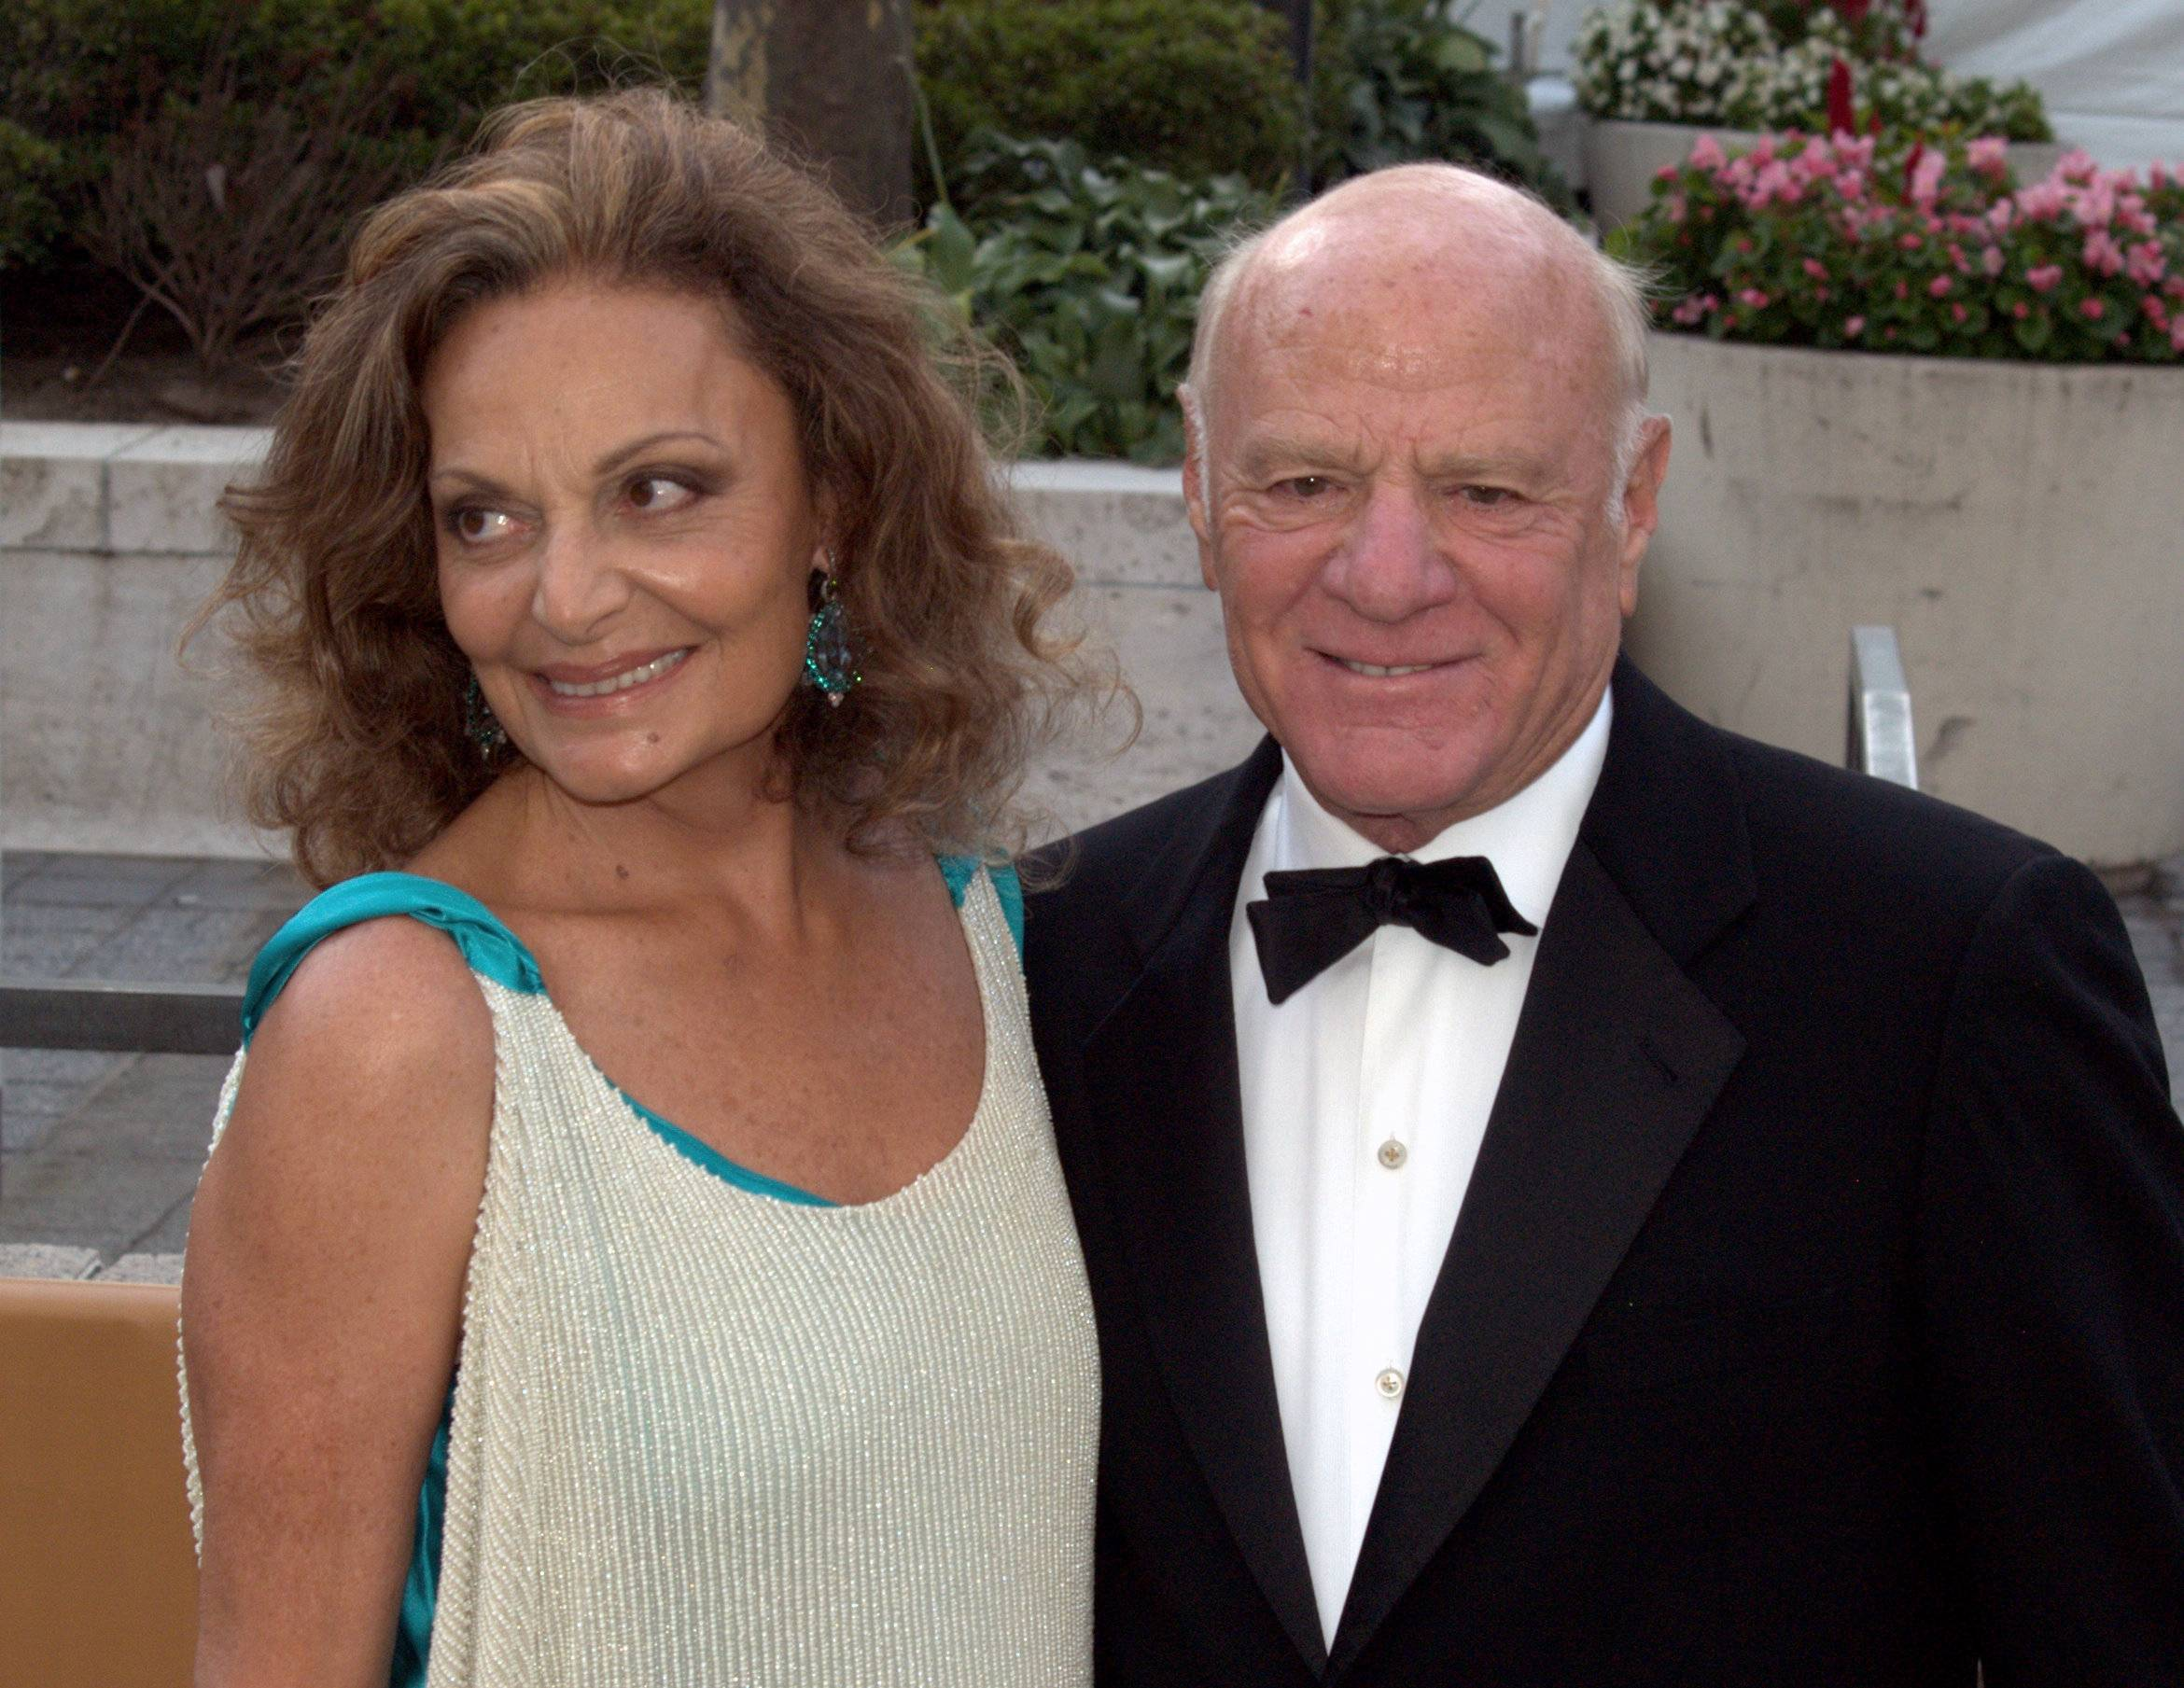 Haute 100 New York Update: Diane von Furstenberg and Barry Diller